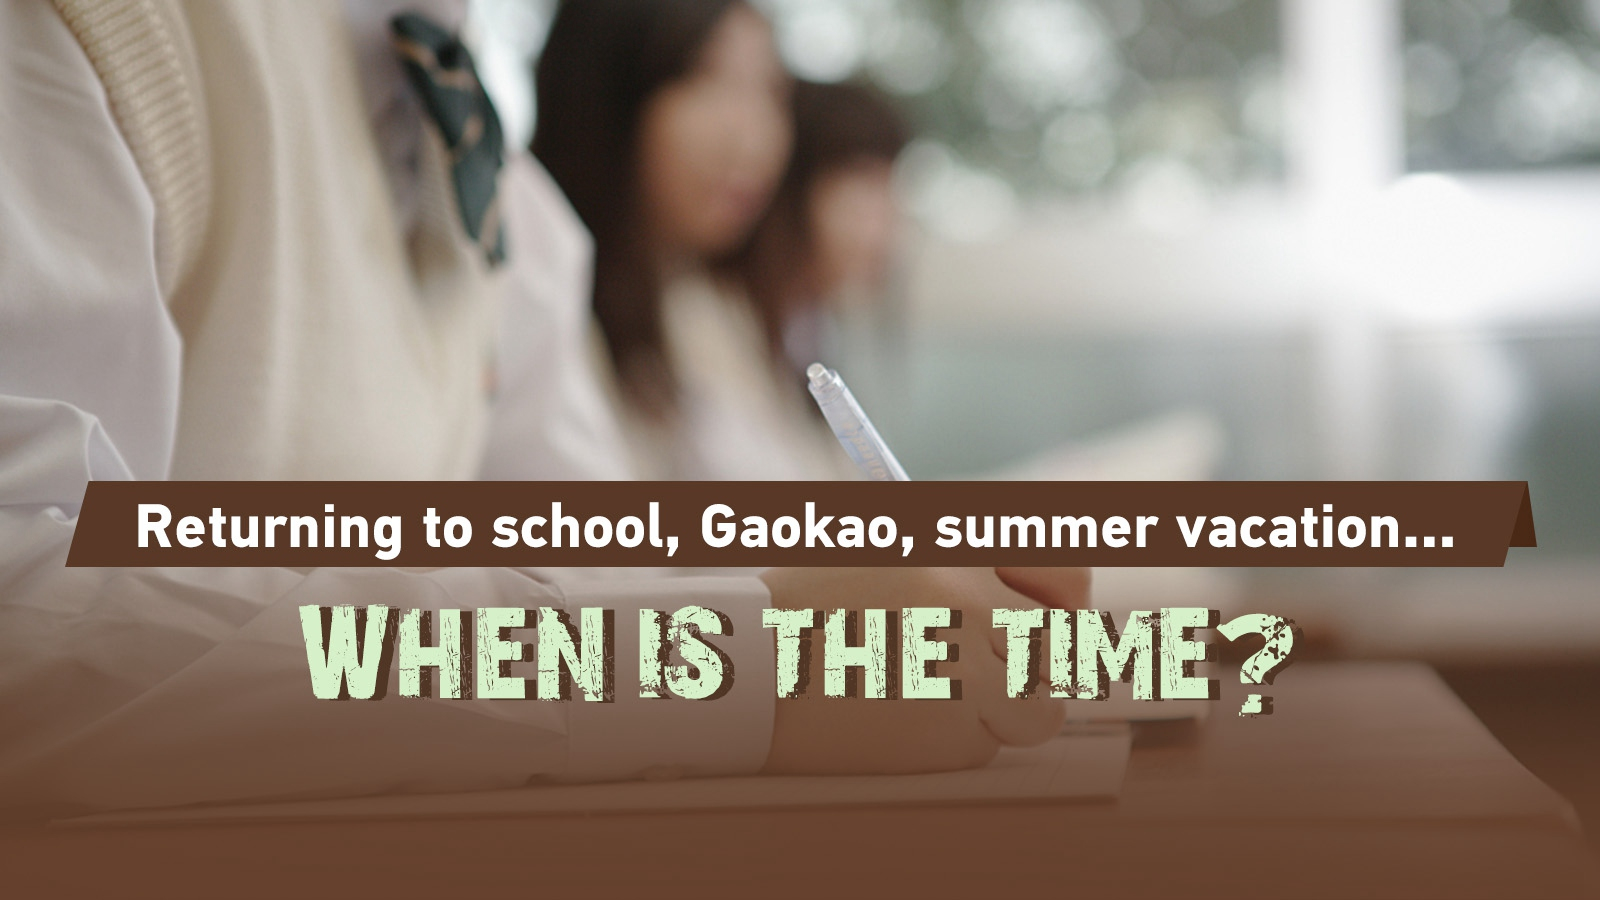 Returning to school, Gaokao & summer vacation: When is the right time?